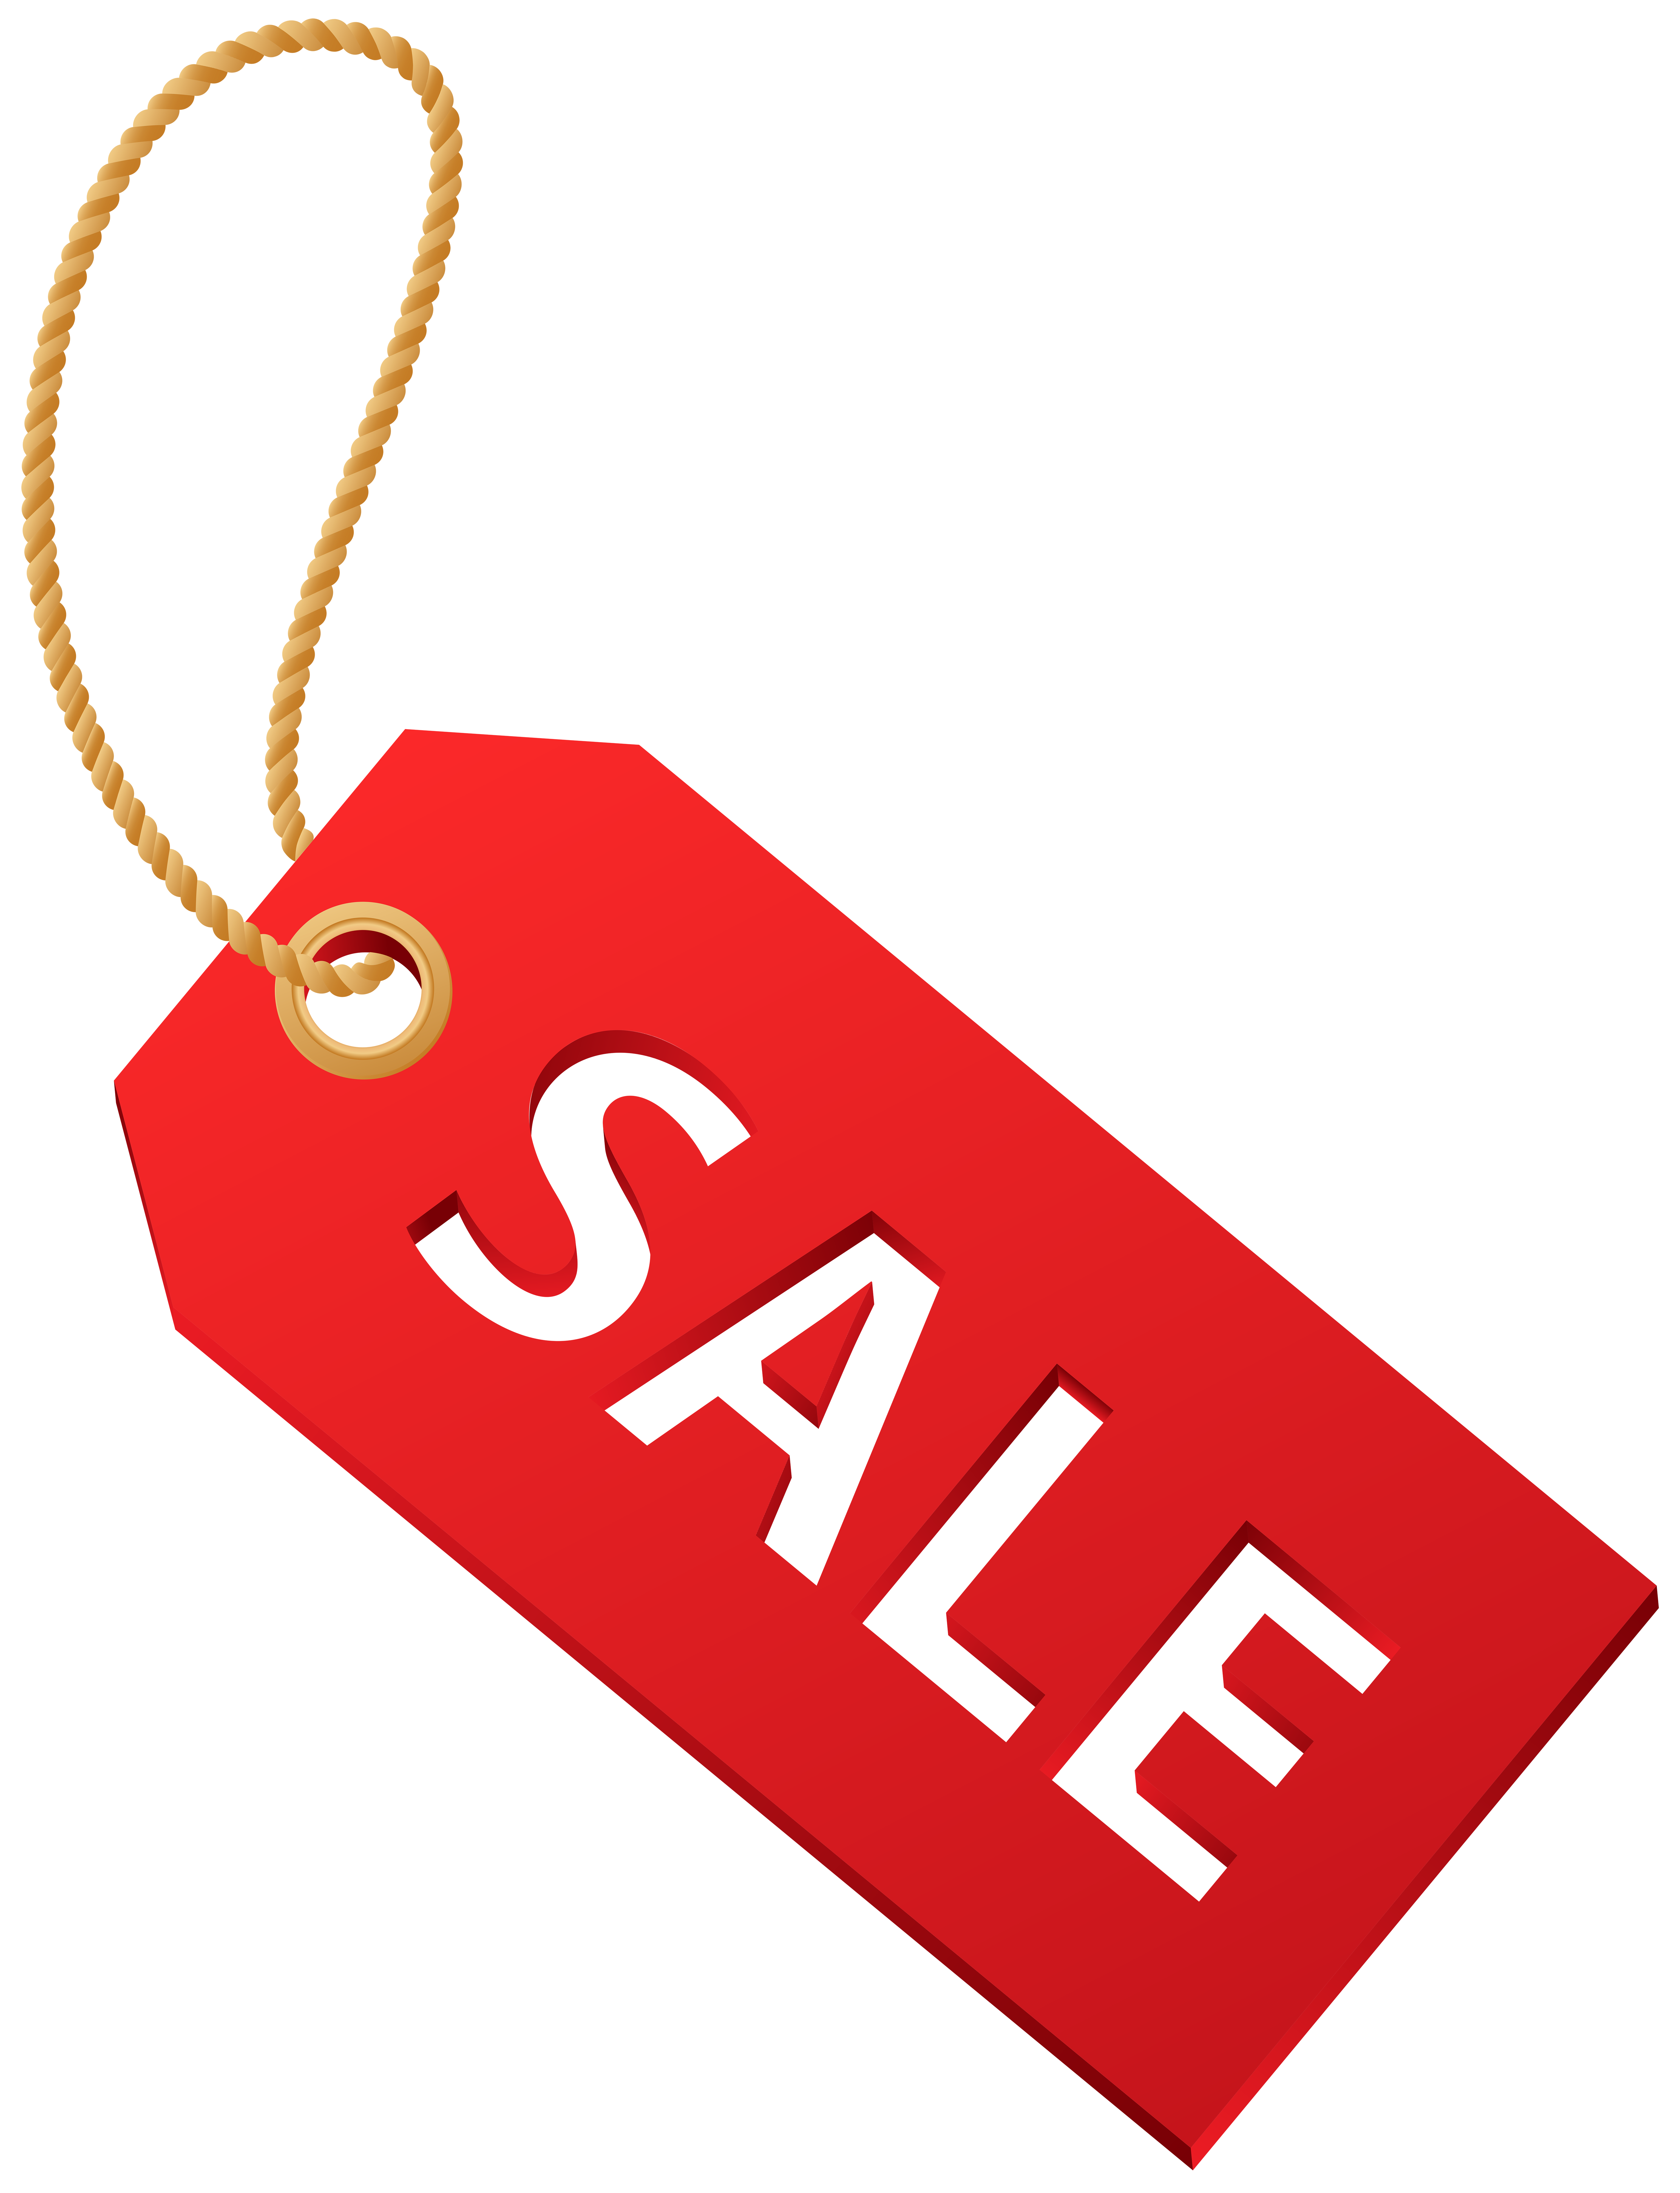 Clip tag sale logo. Graphic free library